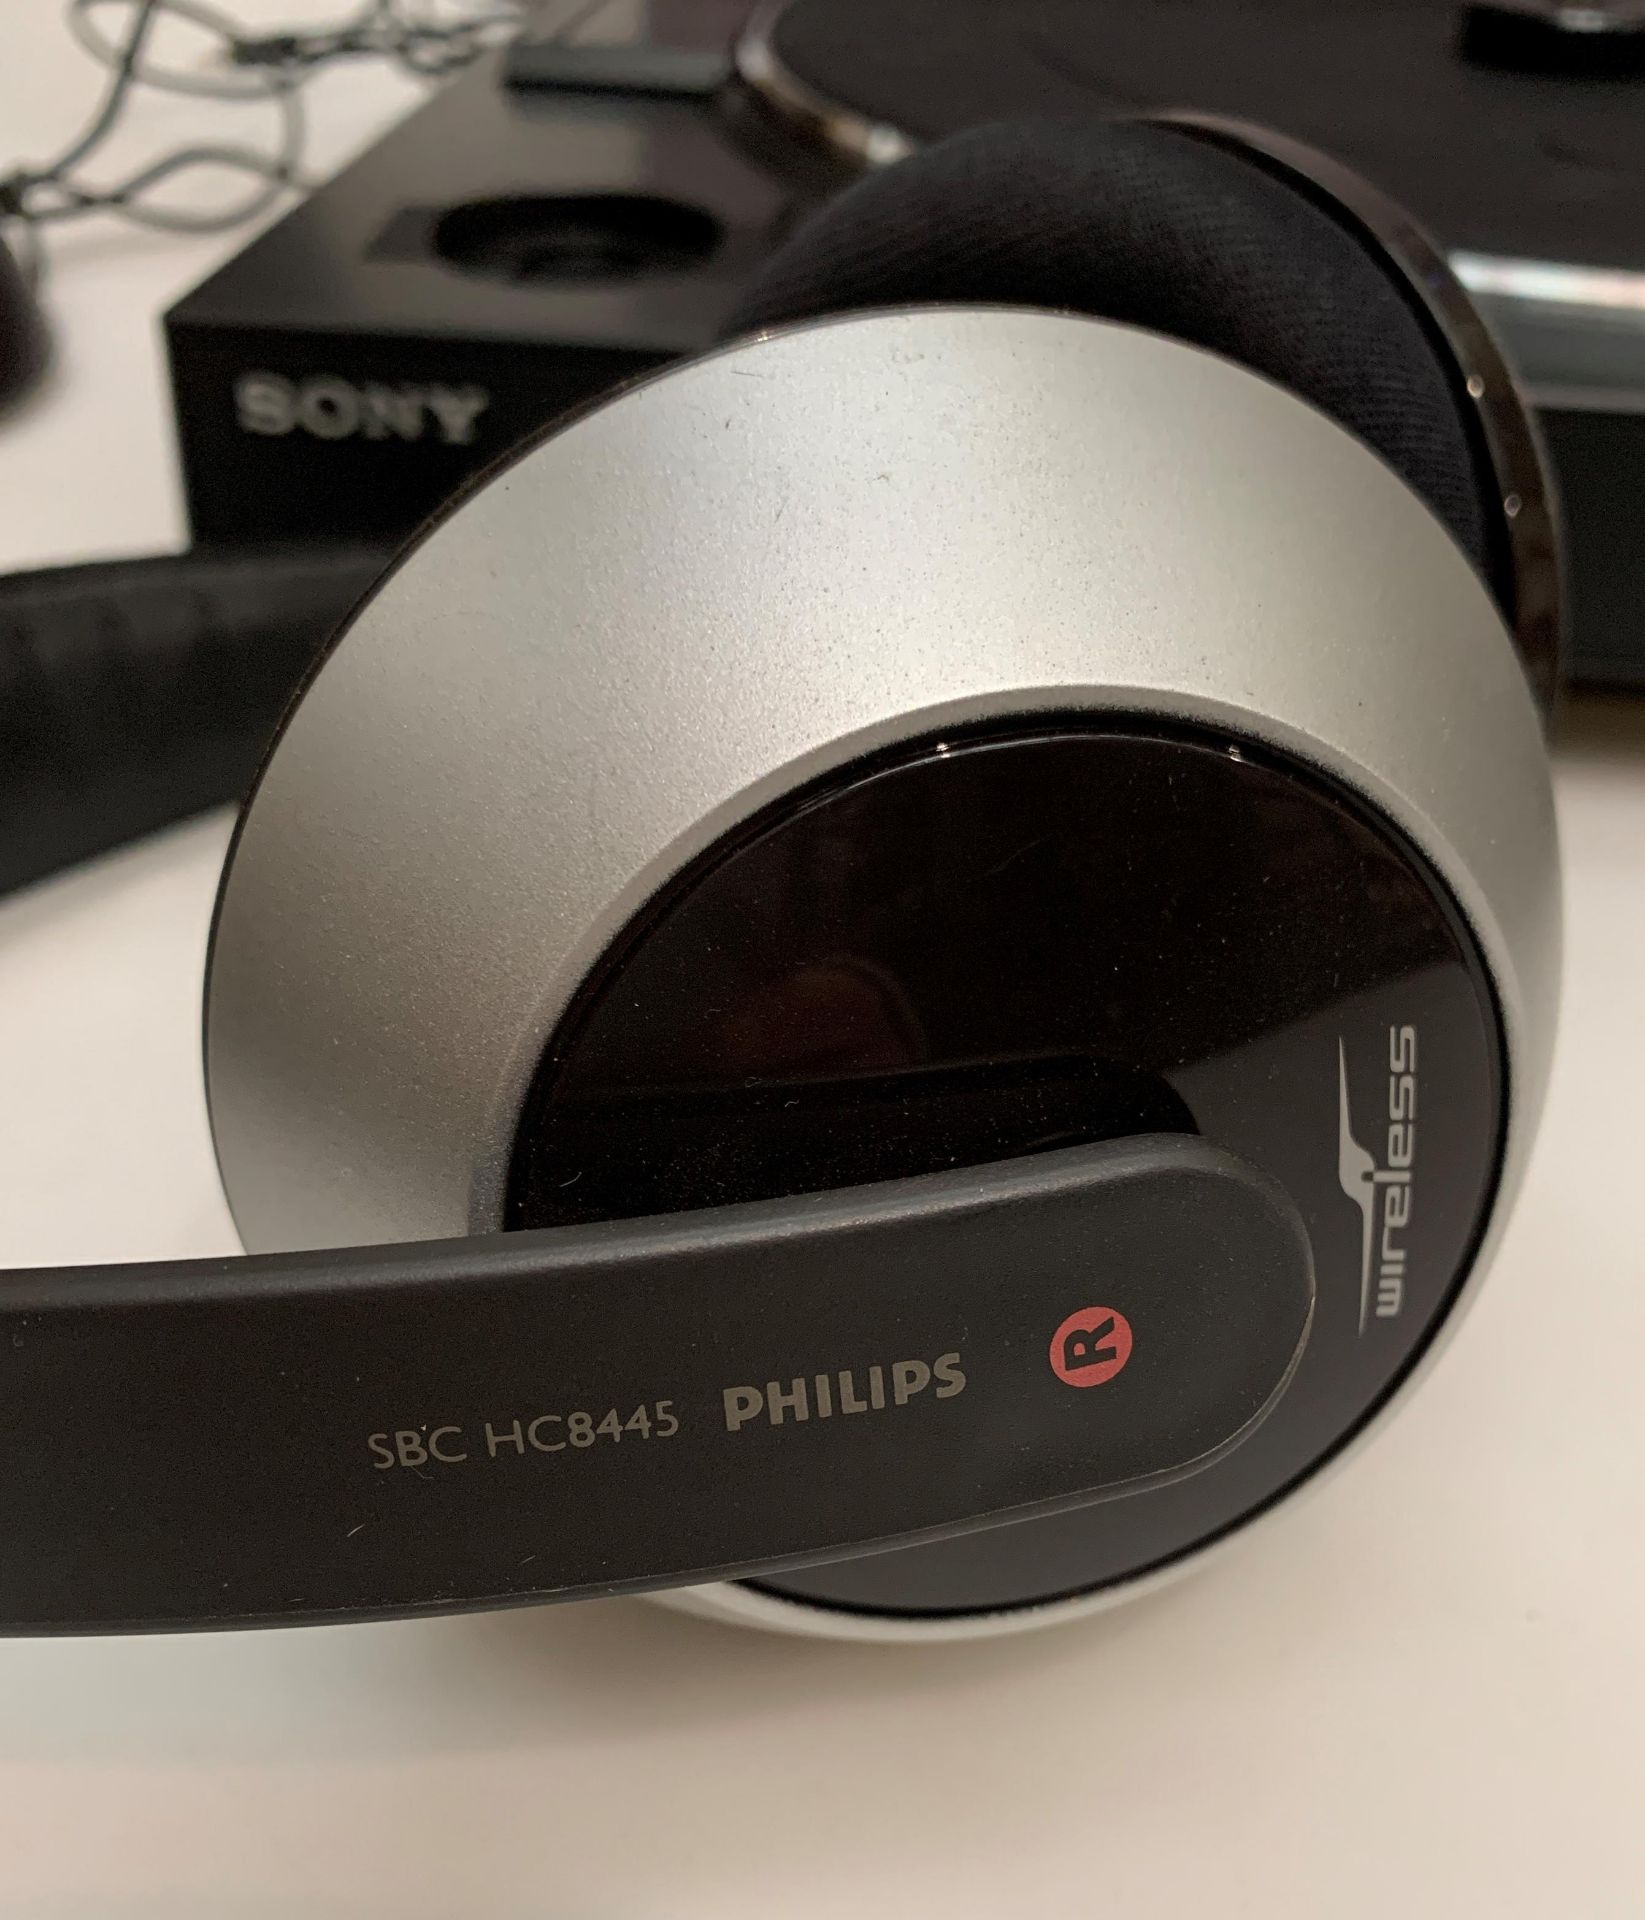 A Sony PS-LX300HSB stereo turntable system and a pair of Philips SBC HC8445 wireless headphones (2) - Image 3 of 3